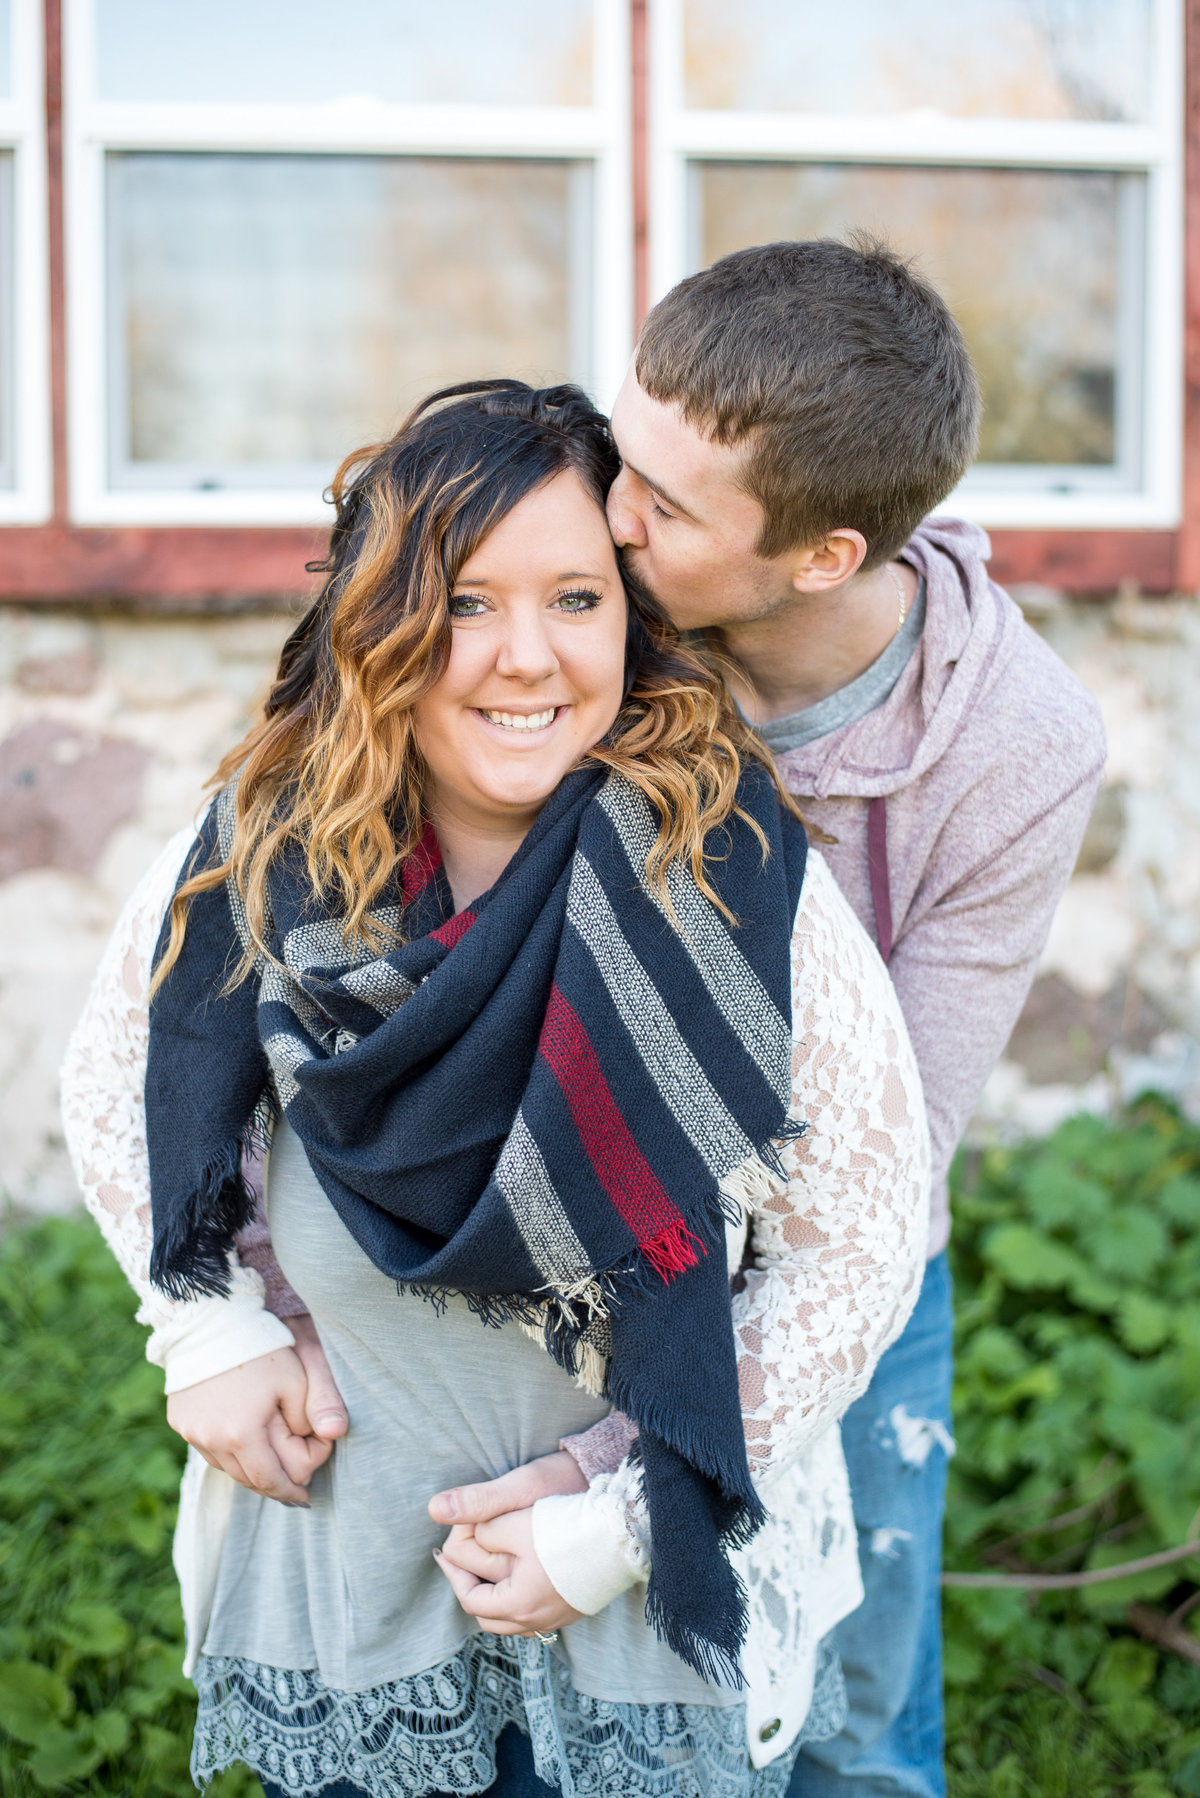 danielle kristine photography-engagements-16